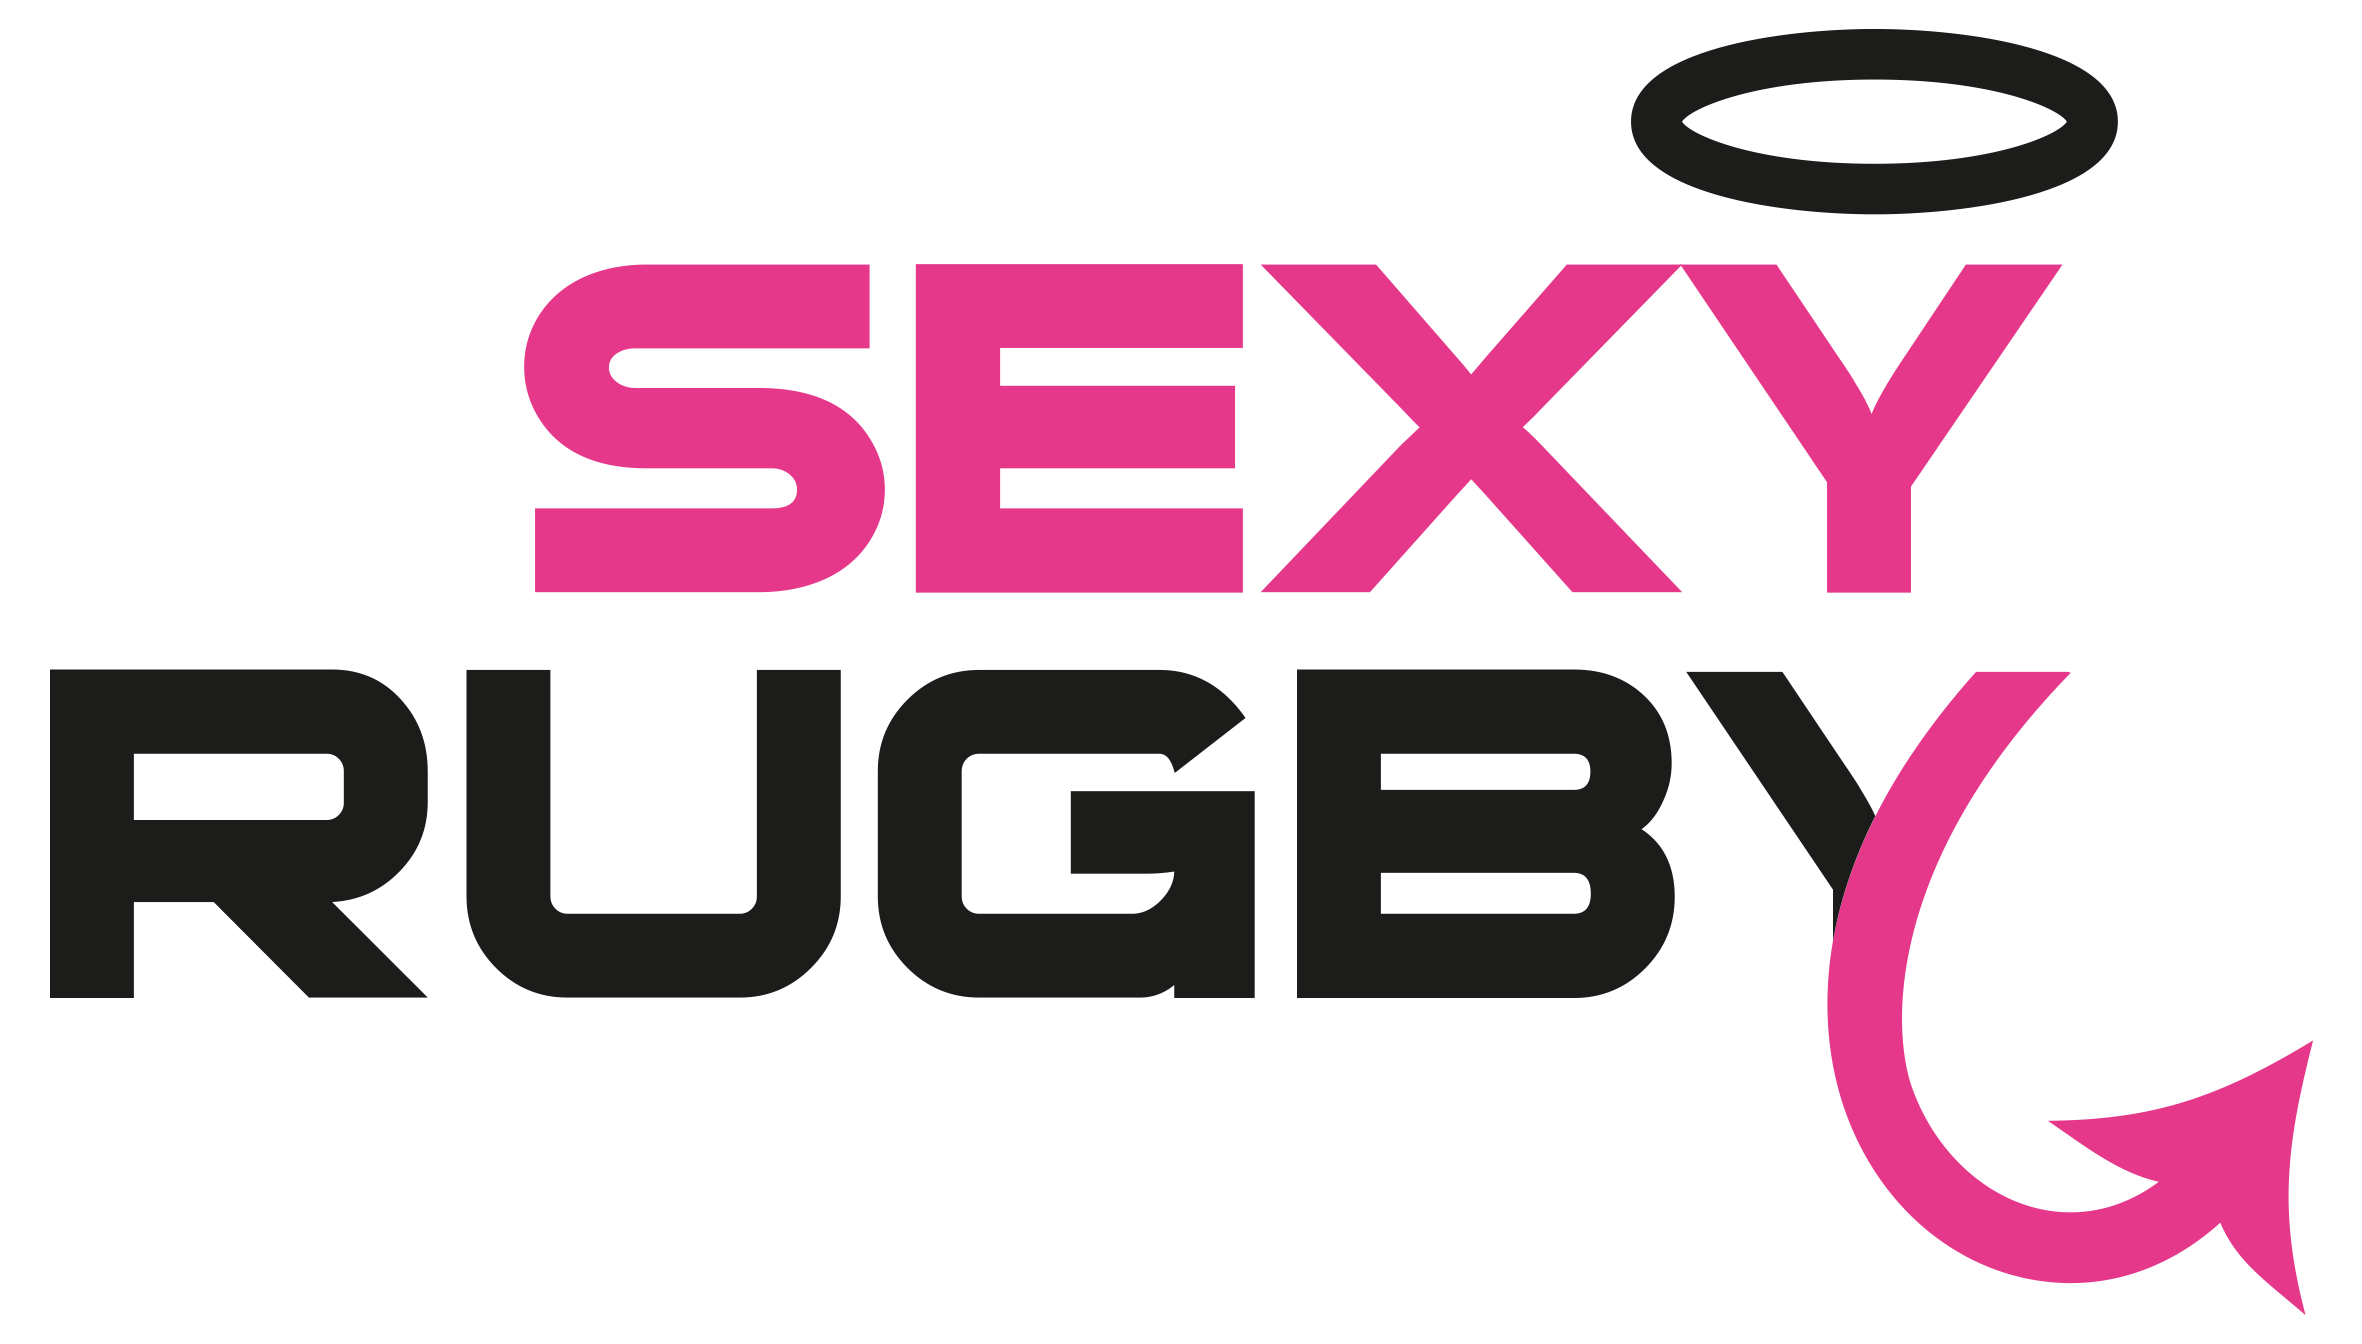 Online rugby shop | Sexy Rugby